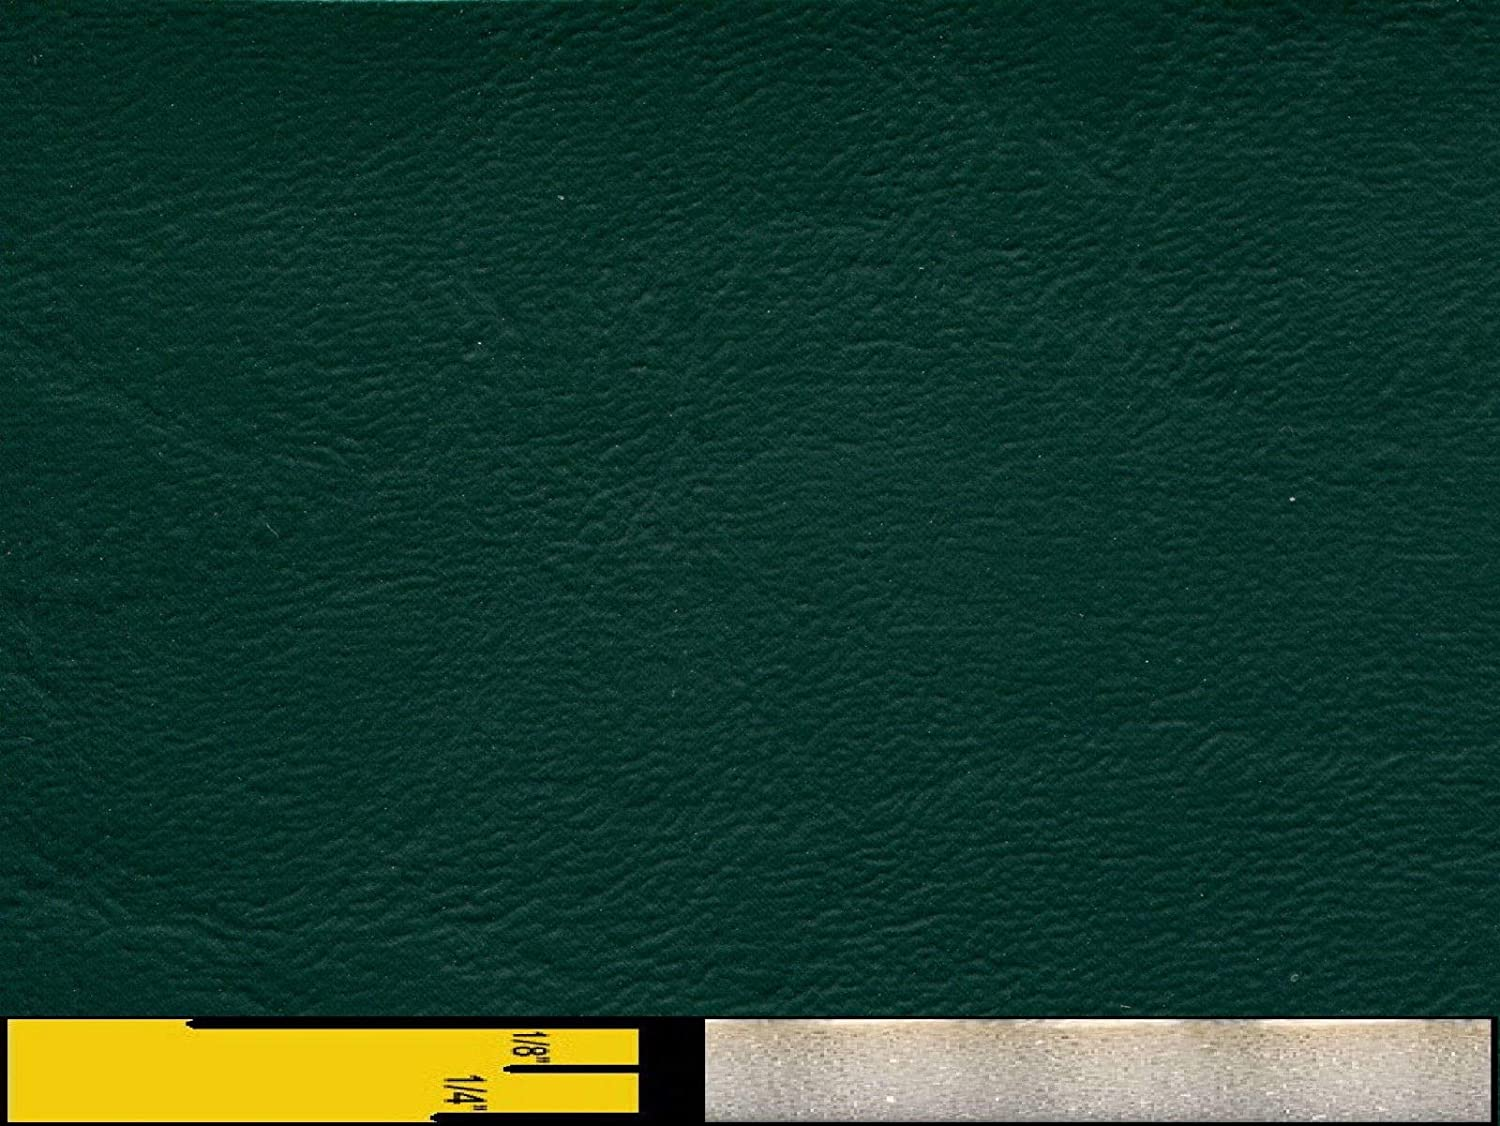 1/4 Foam Backed Marine Vinyl Upholstery Fabric Dark Green 54 Wide by 10 Yards Boat Auto